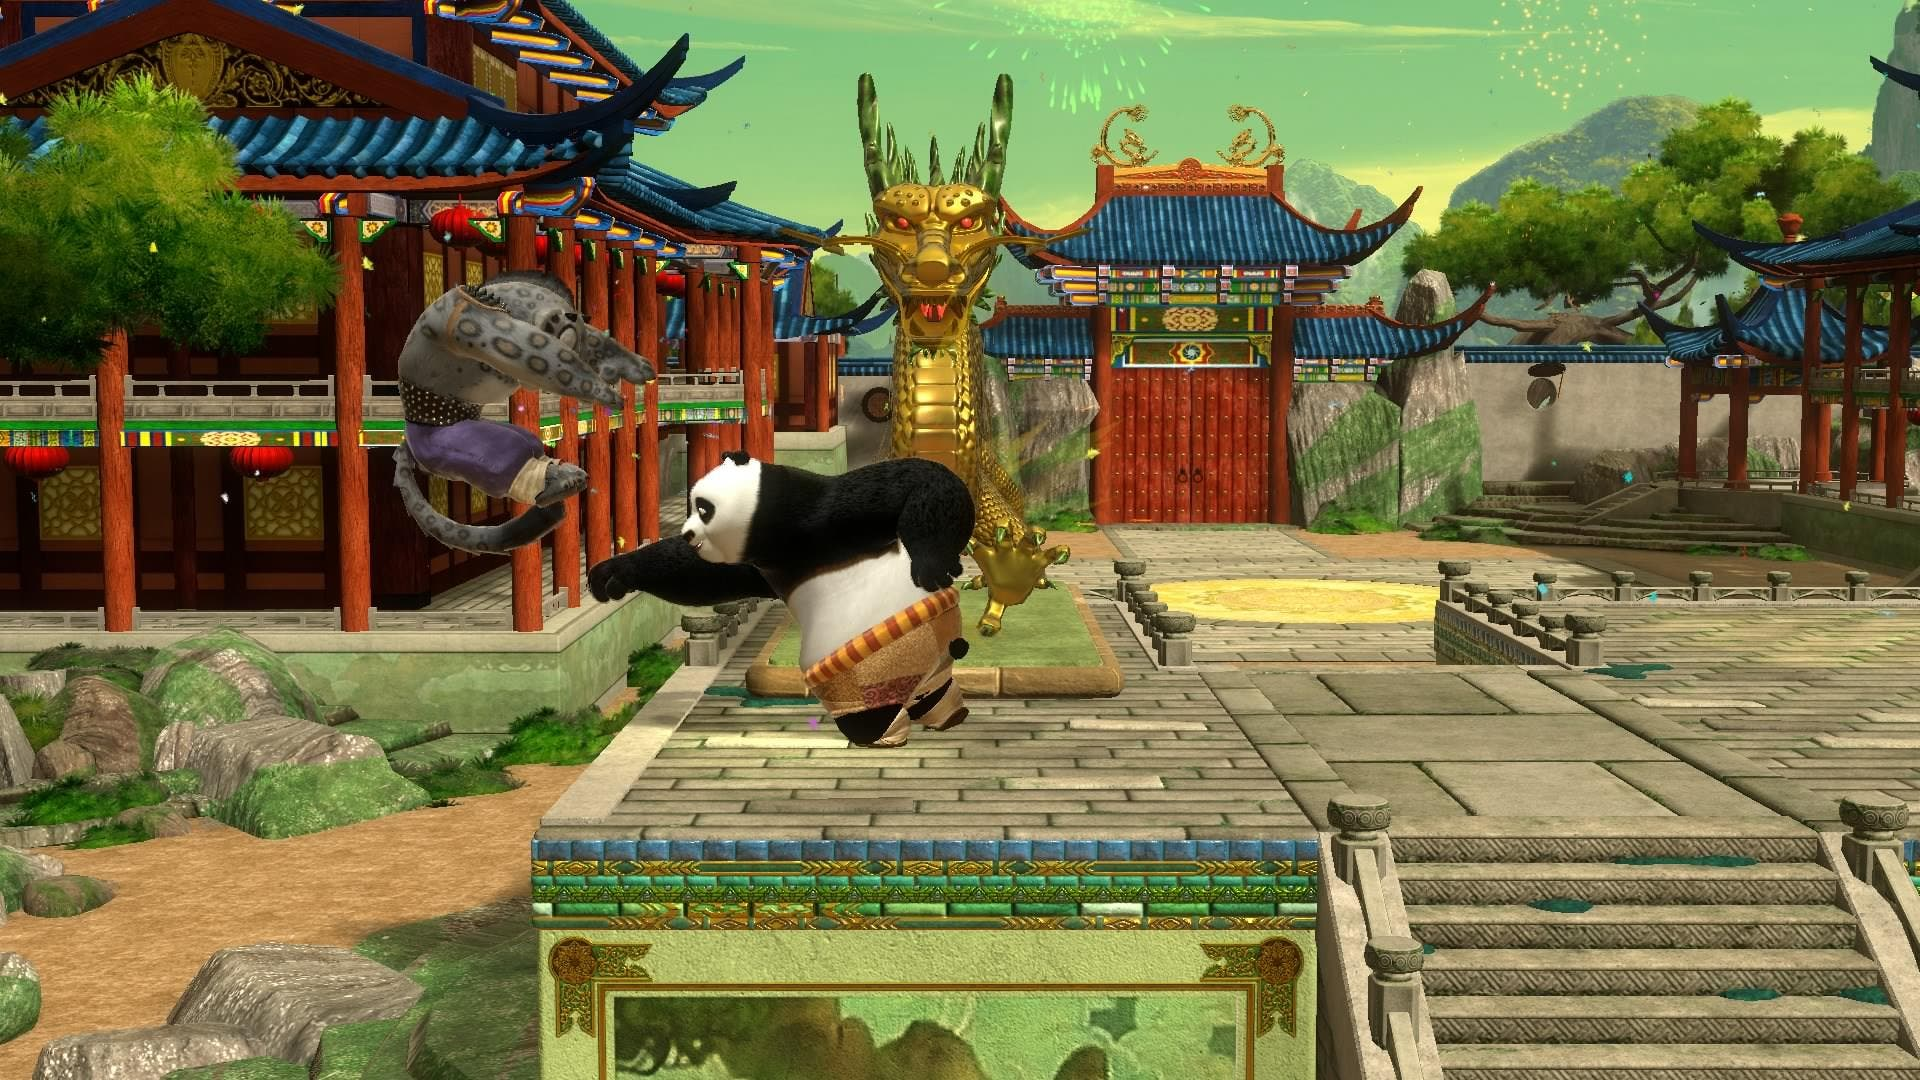 Tráiler de lanzamiento de 'Kung Fu Panda: Showdown of Legendary Legends'